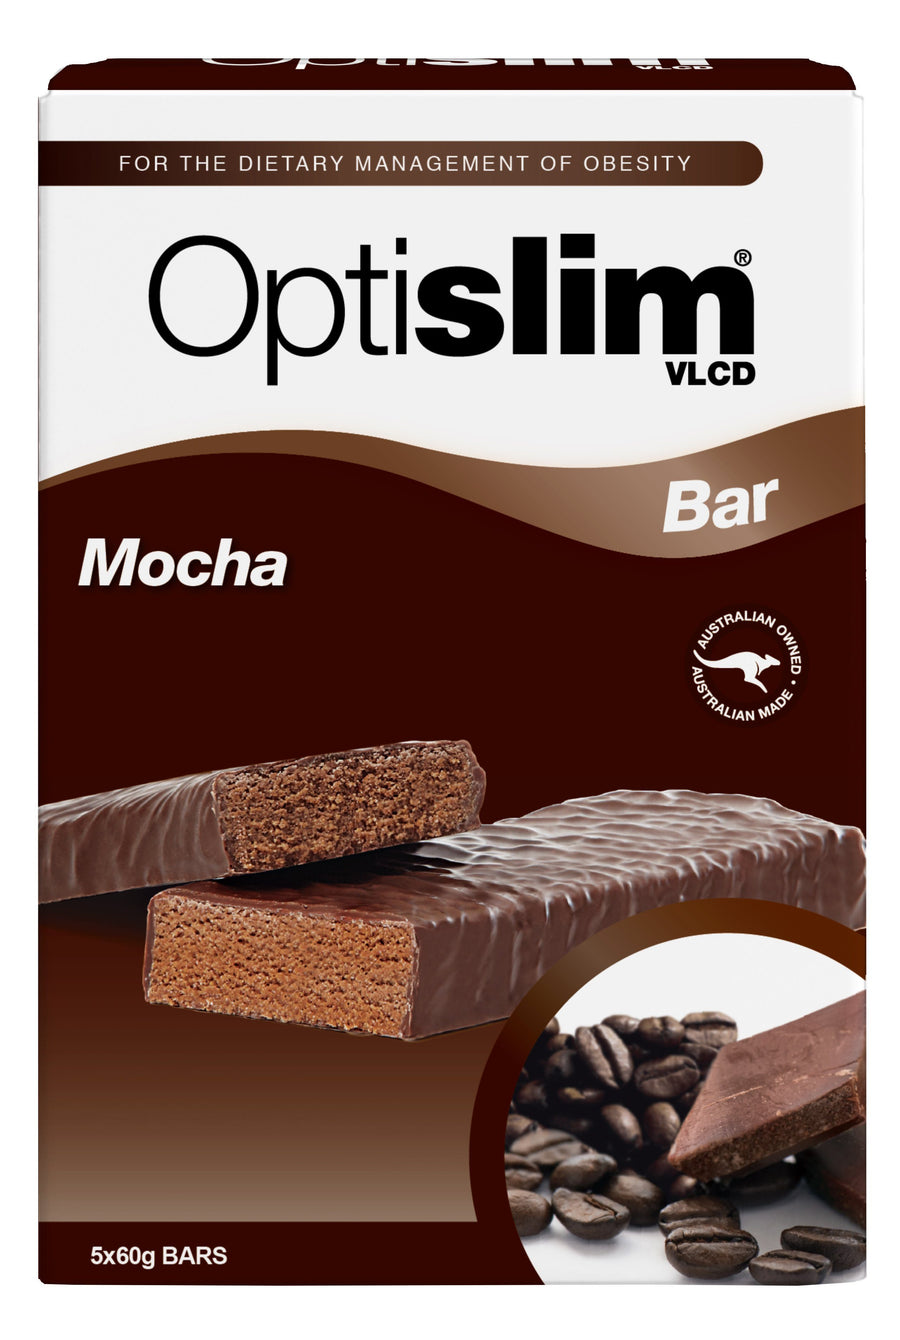 Optislim VLCD Bar Mocha (5x60g) Weight Loss OptiSlim